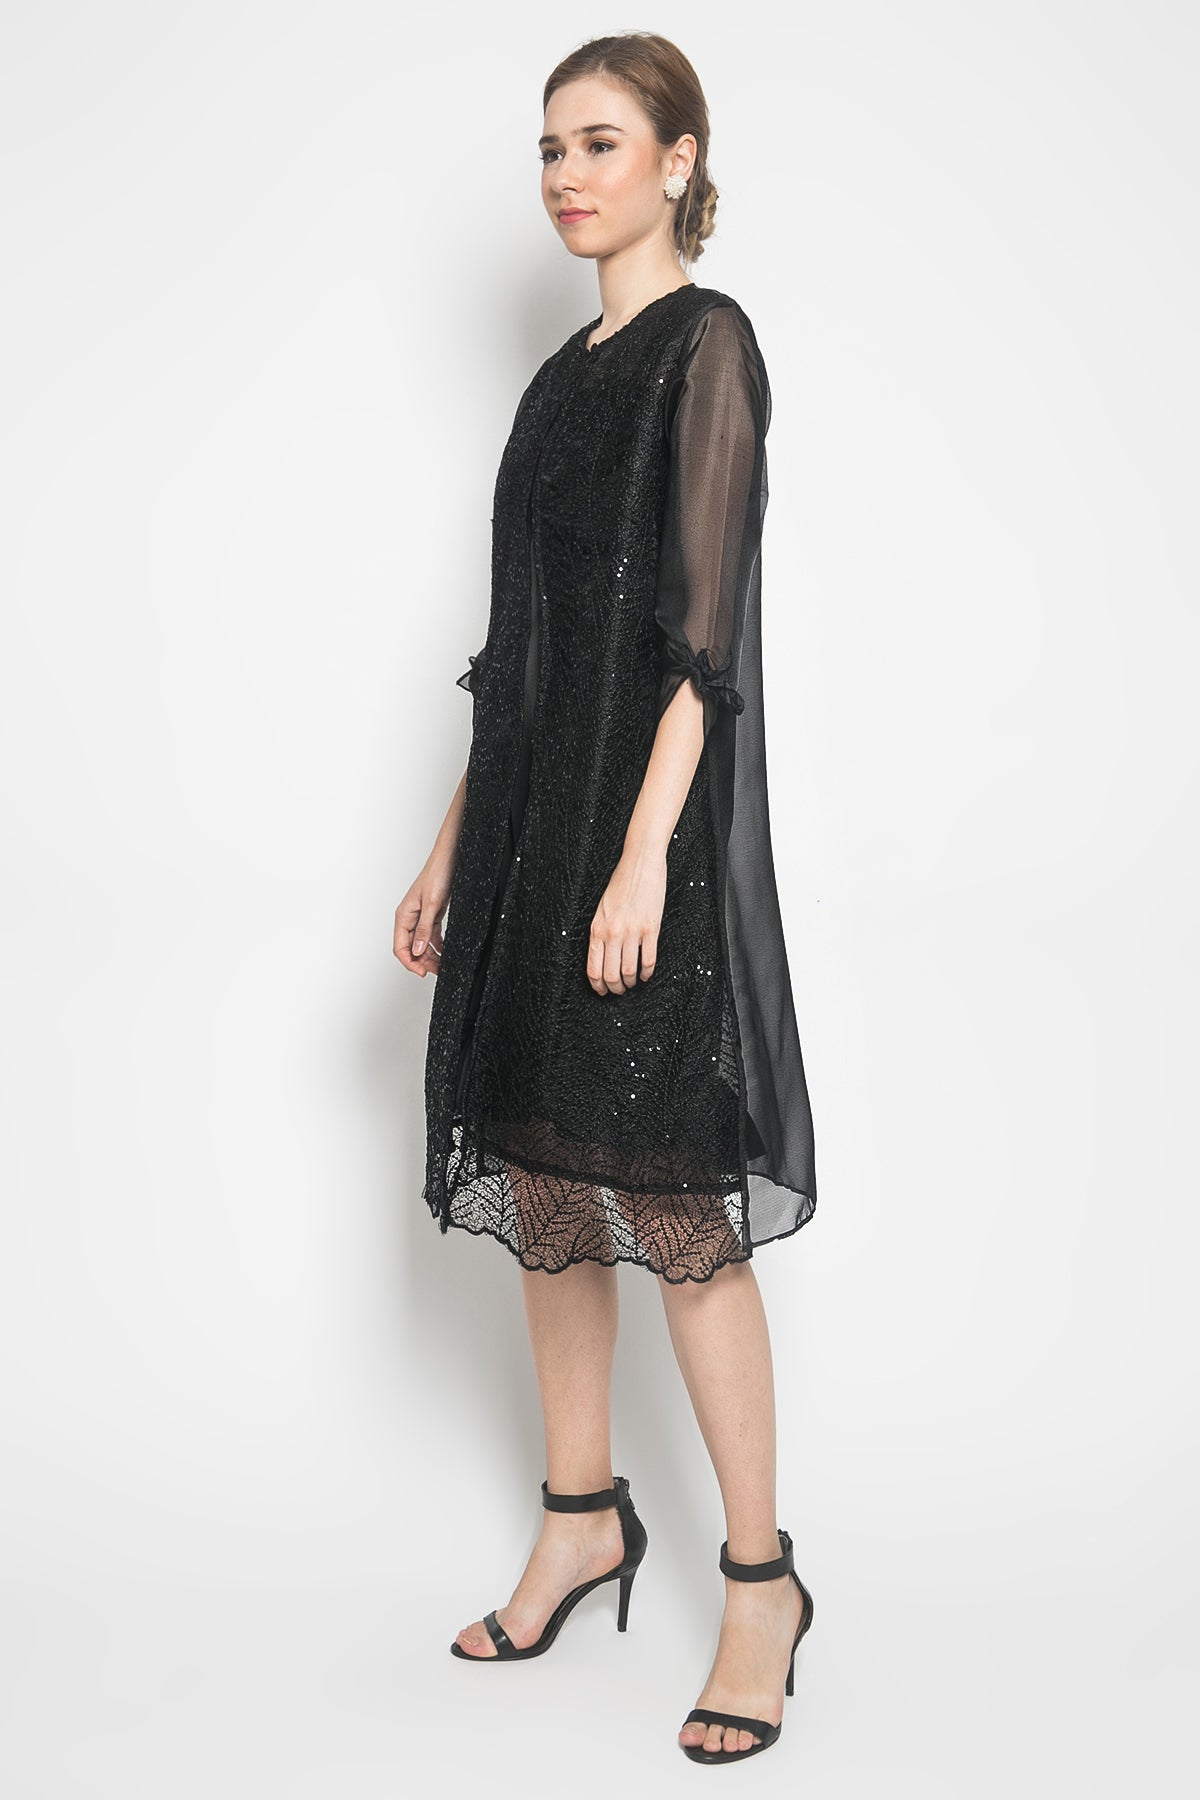 Nuna Ava Dress in Black